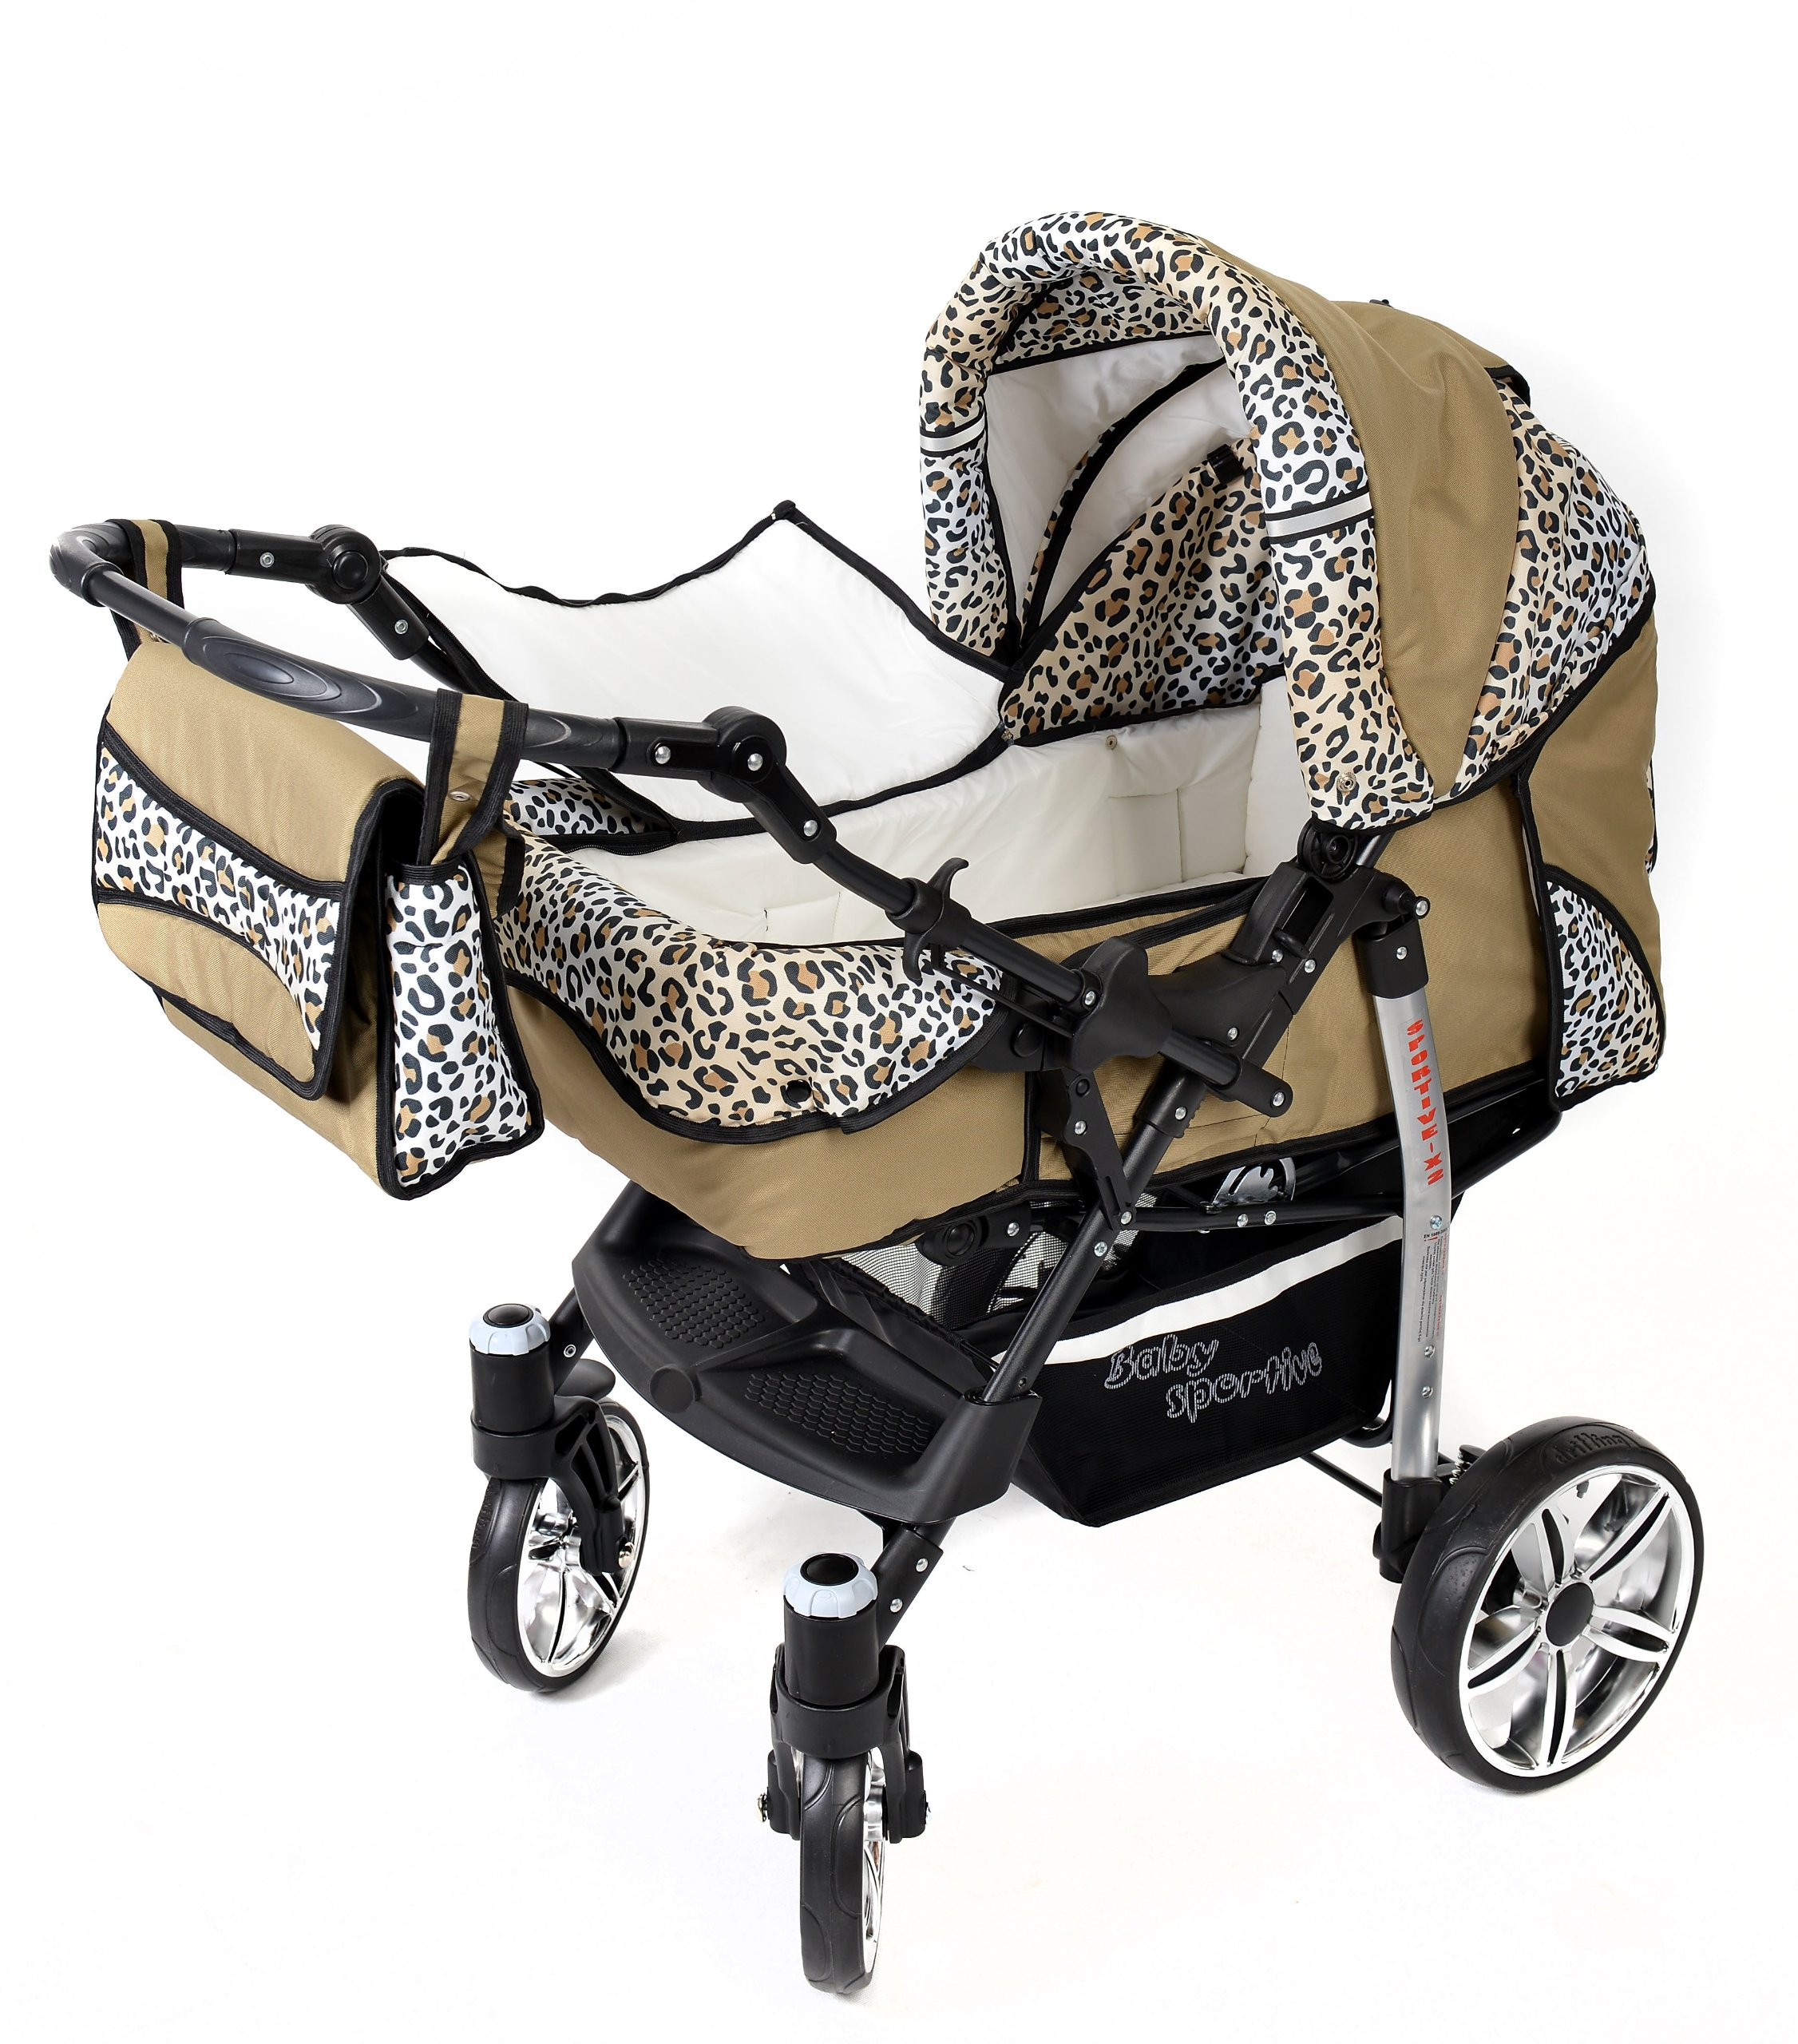 Sportive X2, 3-in-1 Travel System incl. Baby Pram with Swivel Wheels, Car Seat, Pushchair & Accessories (3-in-1 Travel System, Beige & Leopard) Baby Sportive 3 in 1 Travel System All in One Set - Pram, Car Carrier Seat and Sport Buggy + Accessories: carrier bag, rain protection, mosquito net, changing mat, removable bottle holder and removable tray for your child's bits and pieces Suitable from birth, Easy Quick Folding System; Large storage basket; Turnable handle bar that allows to face or rear the drive direction; Quick release rear wheels for easy cleaning after muddy walks Front lockable 360o swivel wheels for manoeuvrability , Small sized when folded, fits into many small car trunks, Carry-cot with a removable hood, Reflective elements for better visibility 8